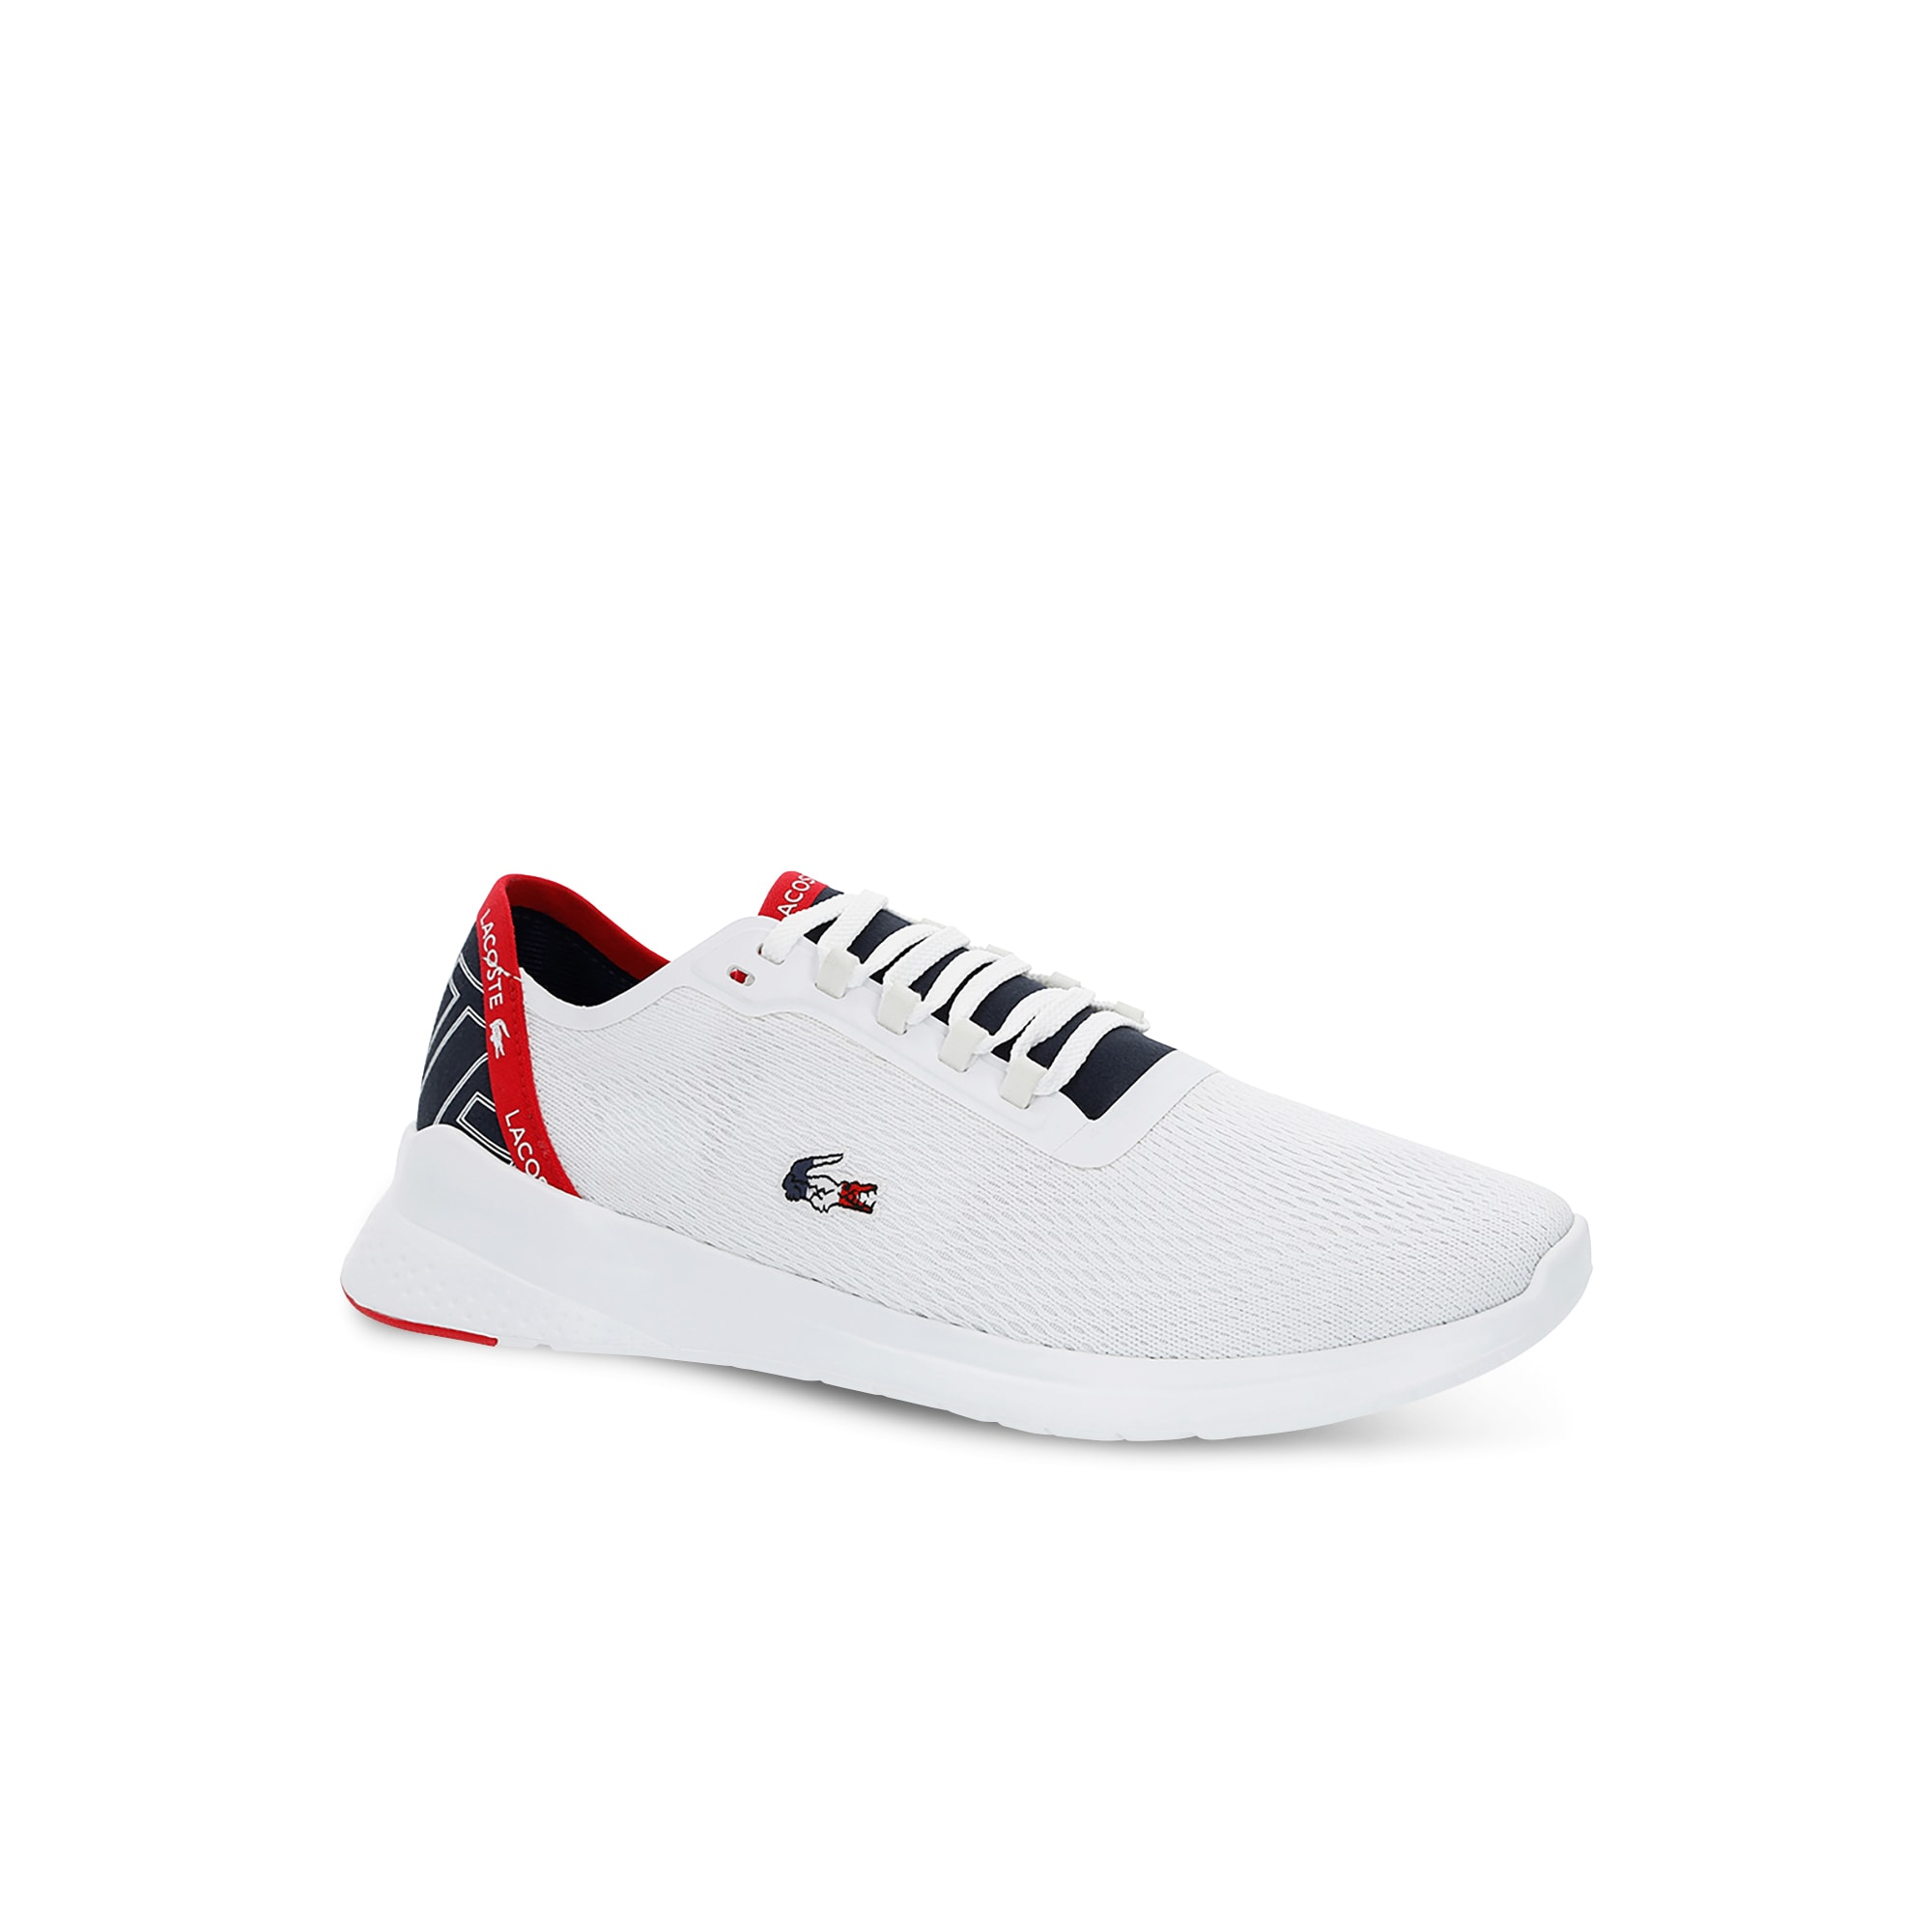 667527d2536c24 Men s LT Fit Sneakers with Tricolor Croc